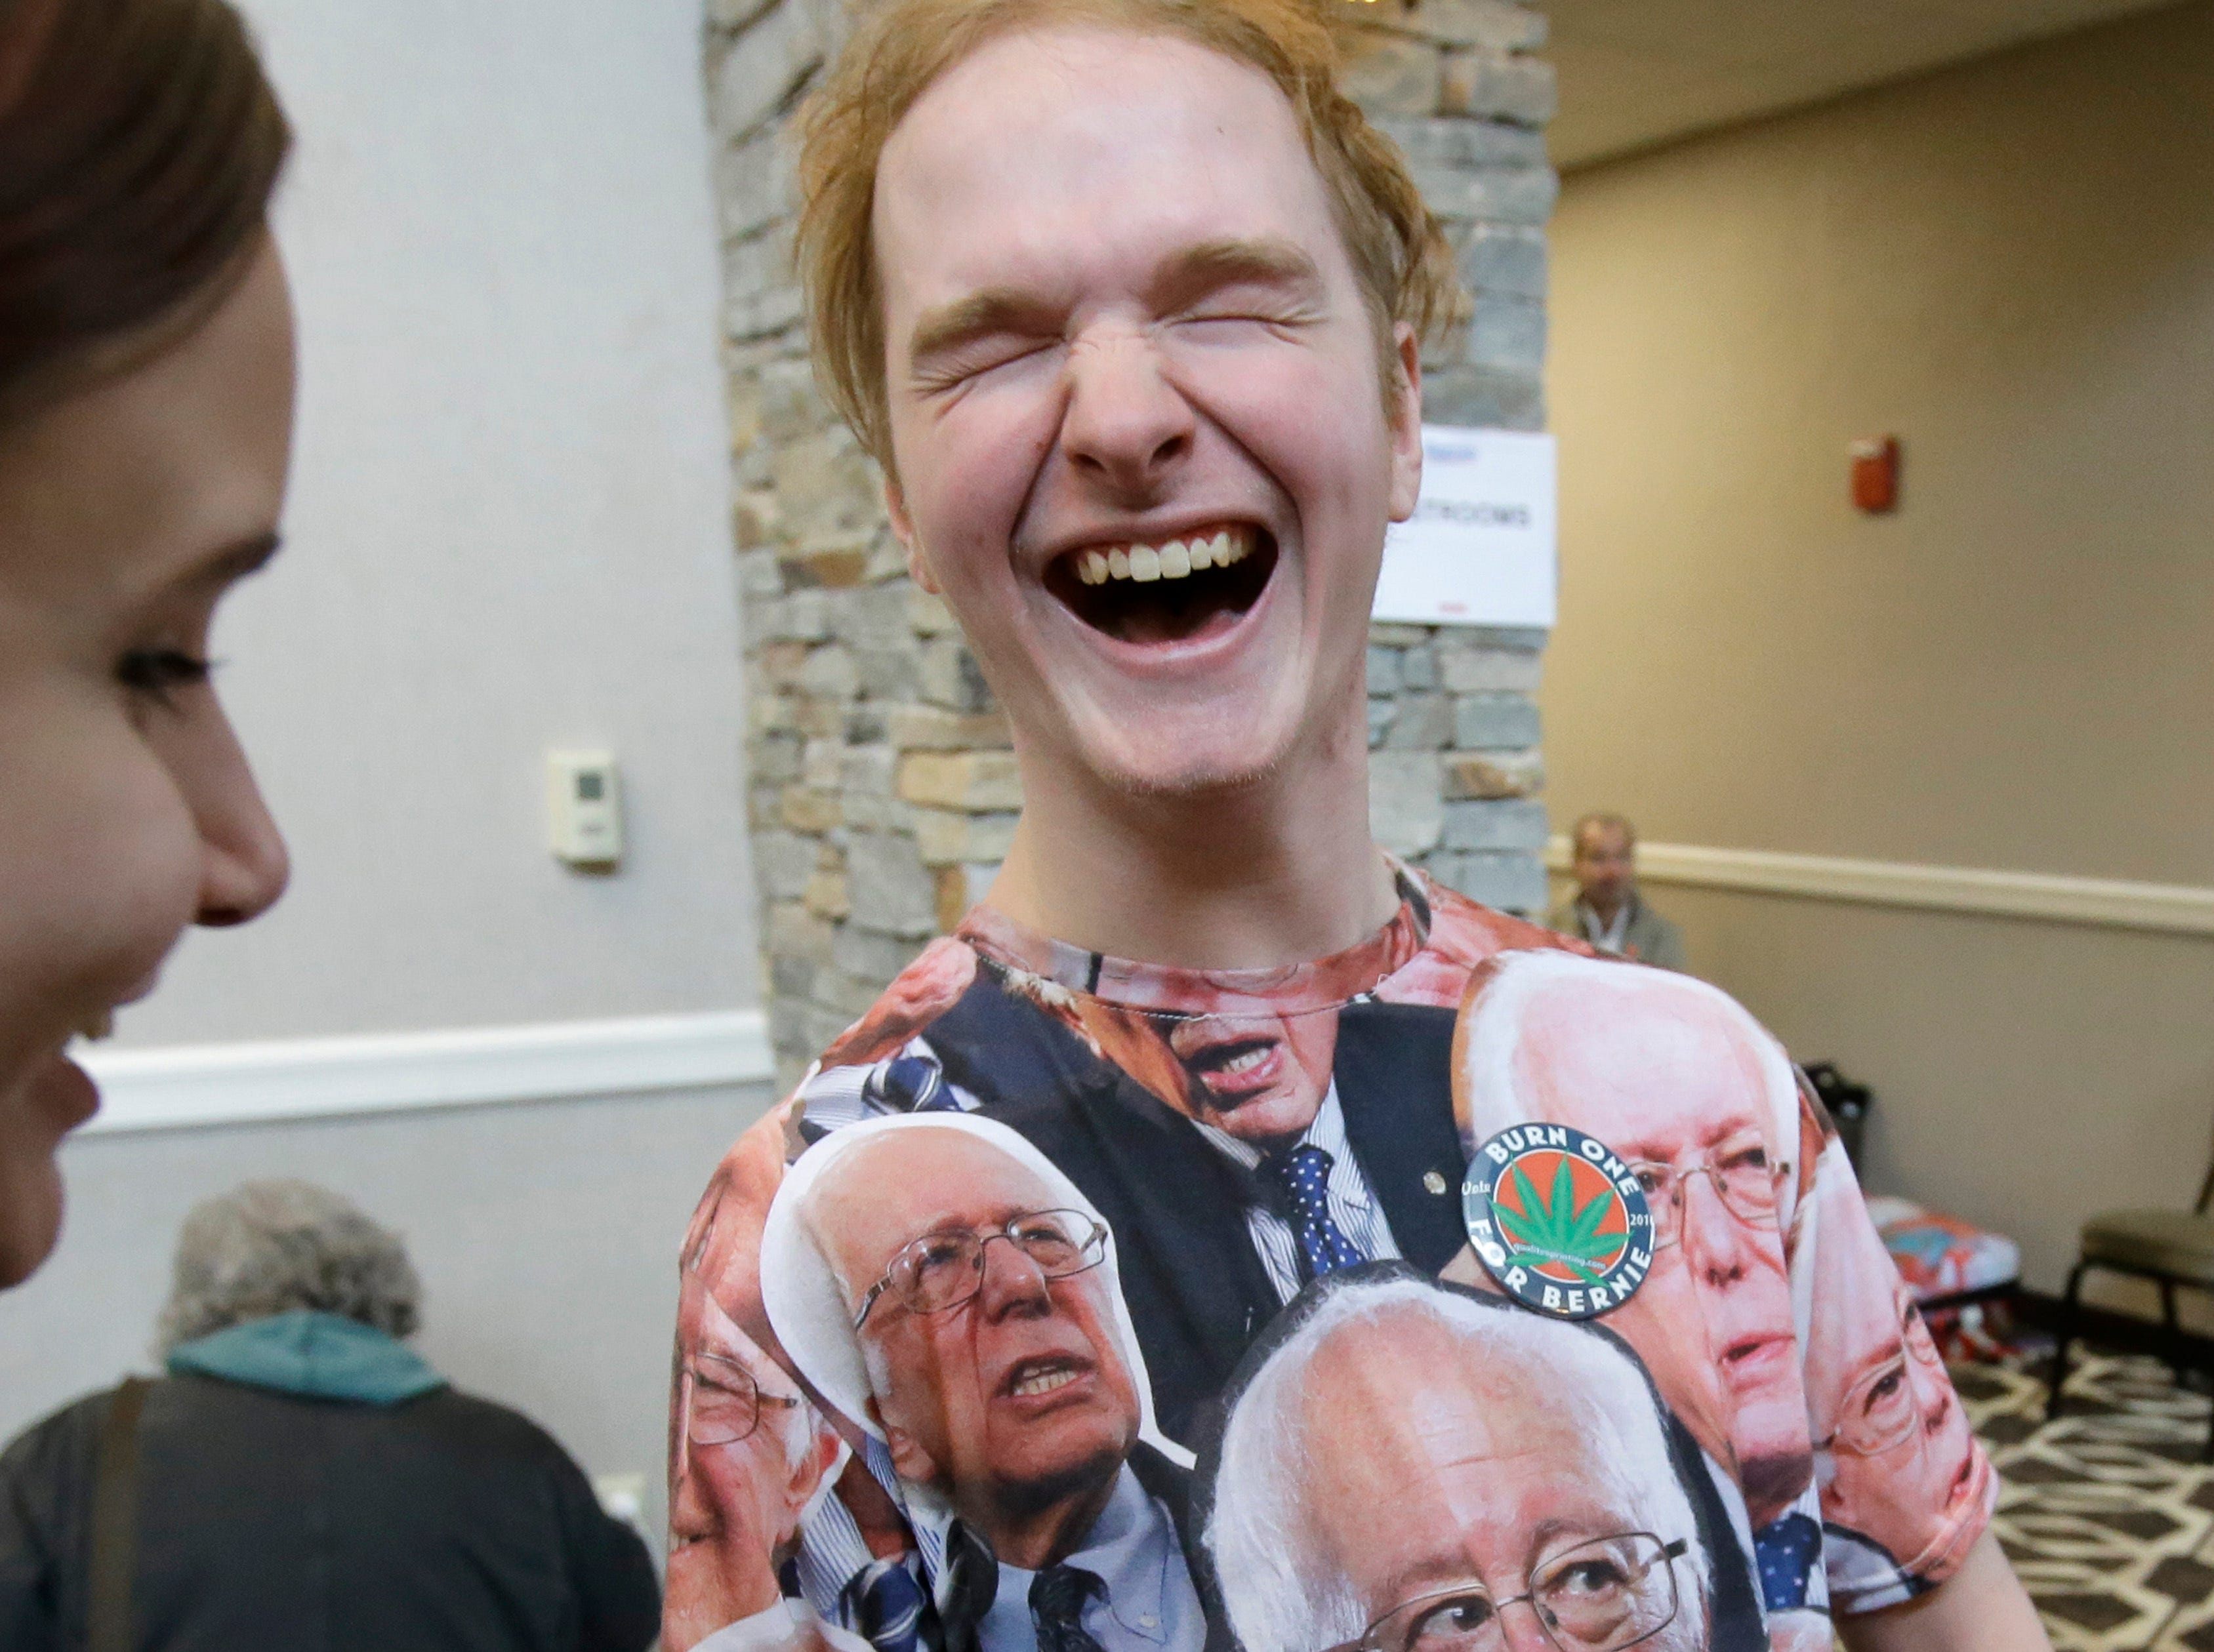 Douglas Frenette, of Amherst, N.H., center, wears a shirt featuring the likeness of 2020 Democratic presidential candidate Sen. Bernie Sanders, as Frenette is asked to sign a petition outside the location of a scheduled Sanders campaign event, Sunday, March 10, 2019, in Concord, N.H.